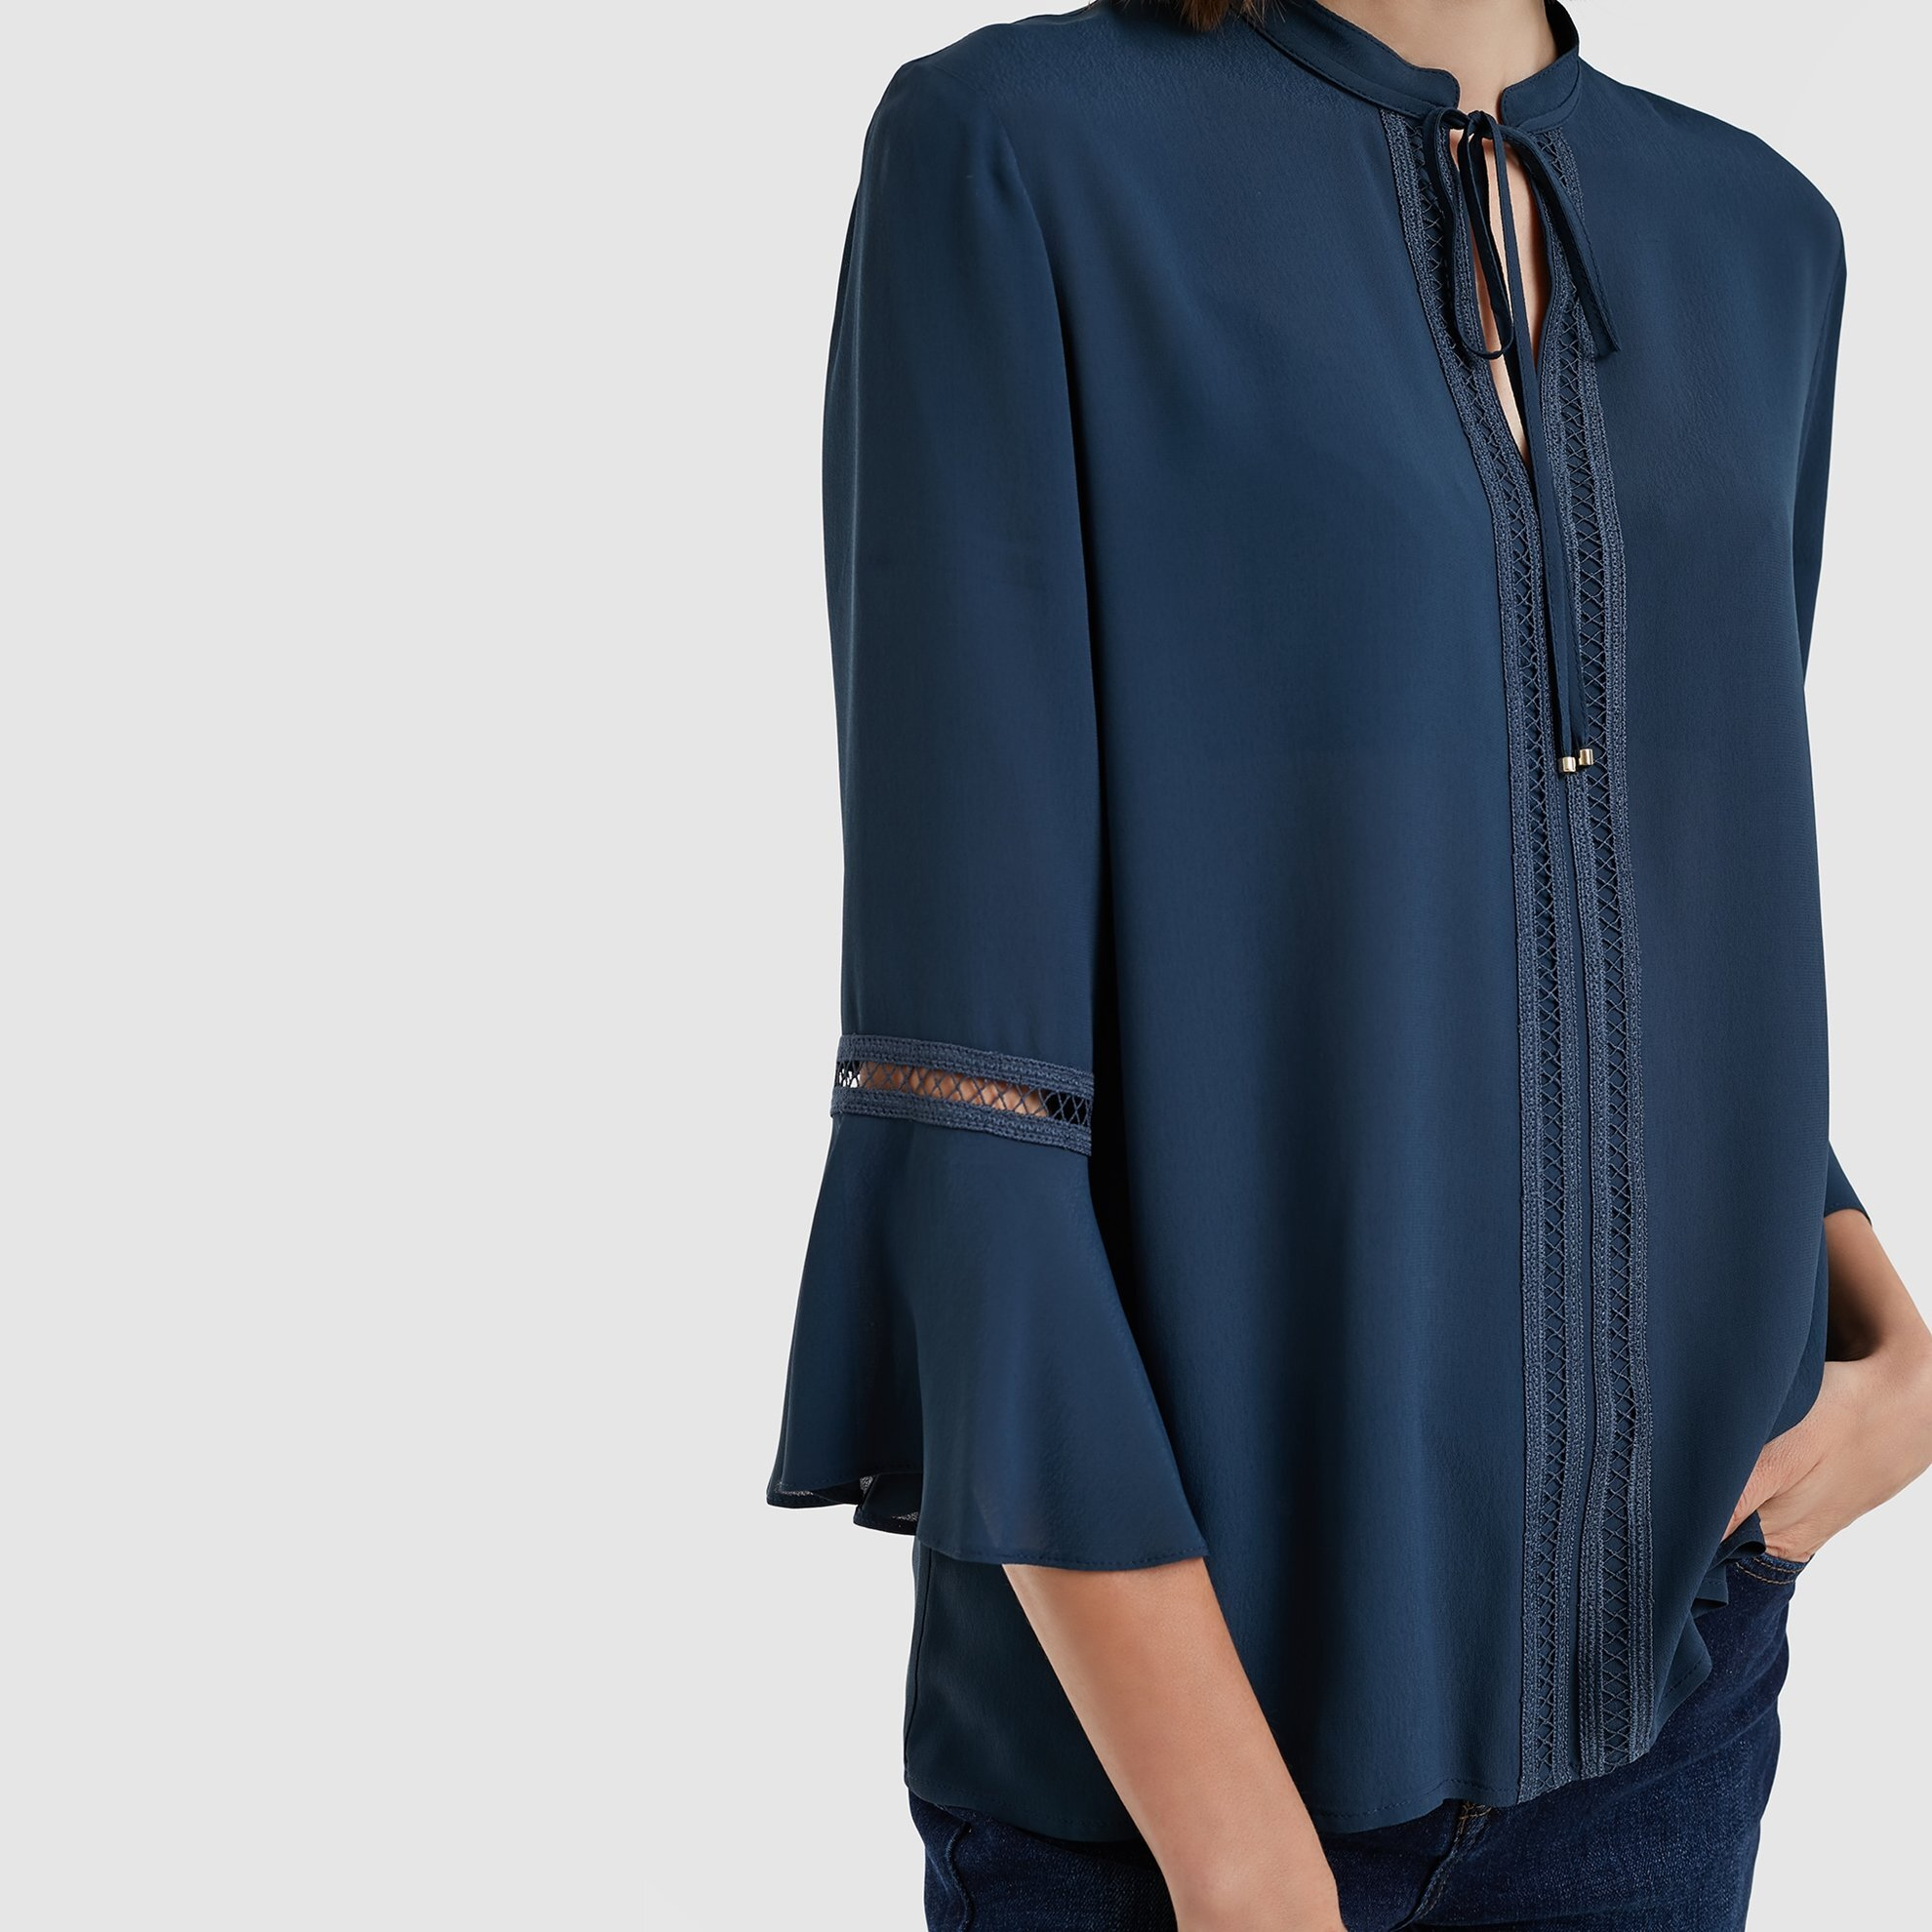 3/4 Sleeve Tie Neck Blouse